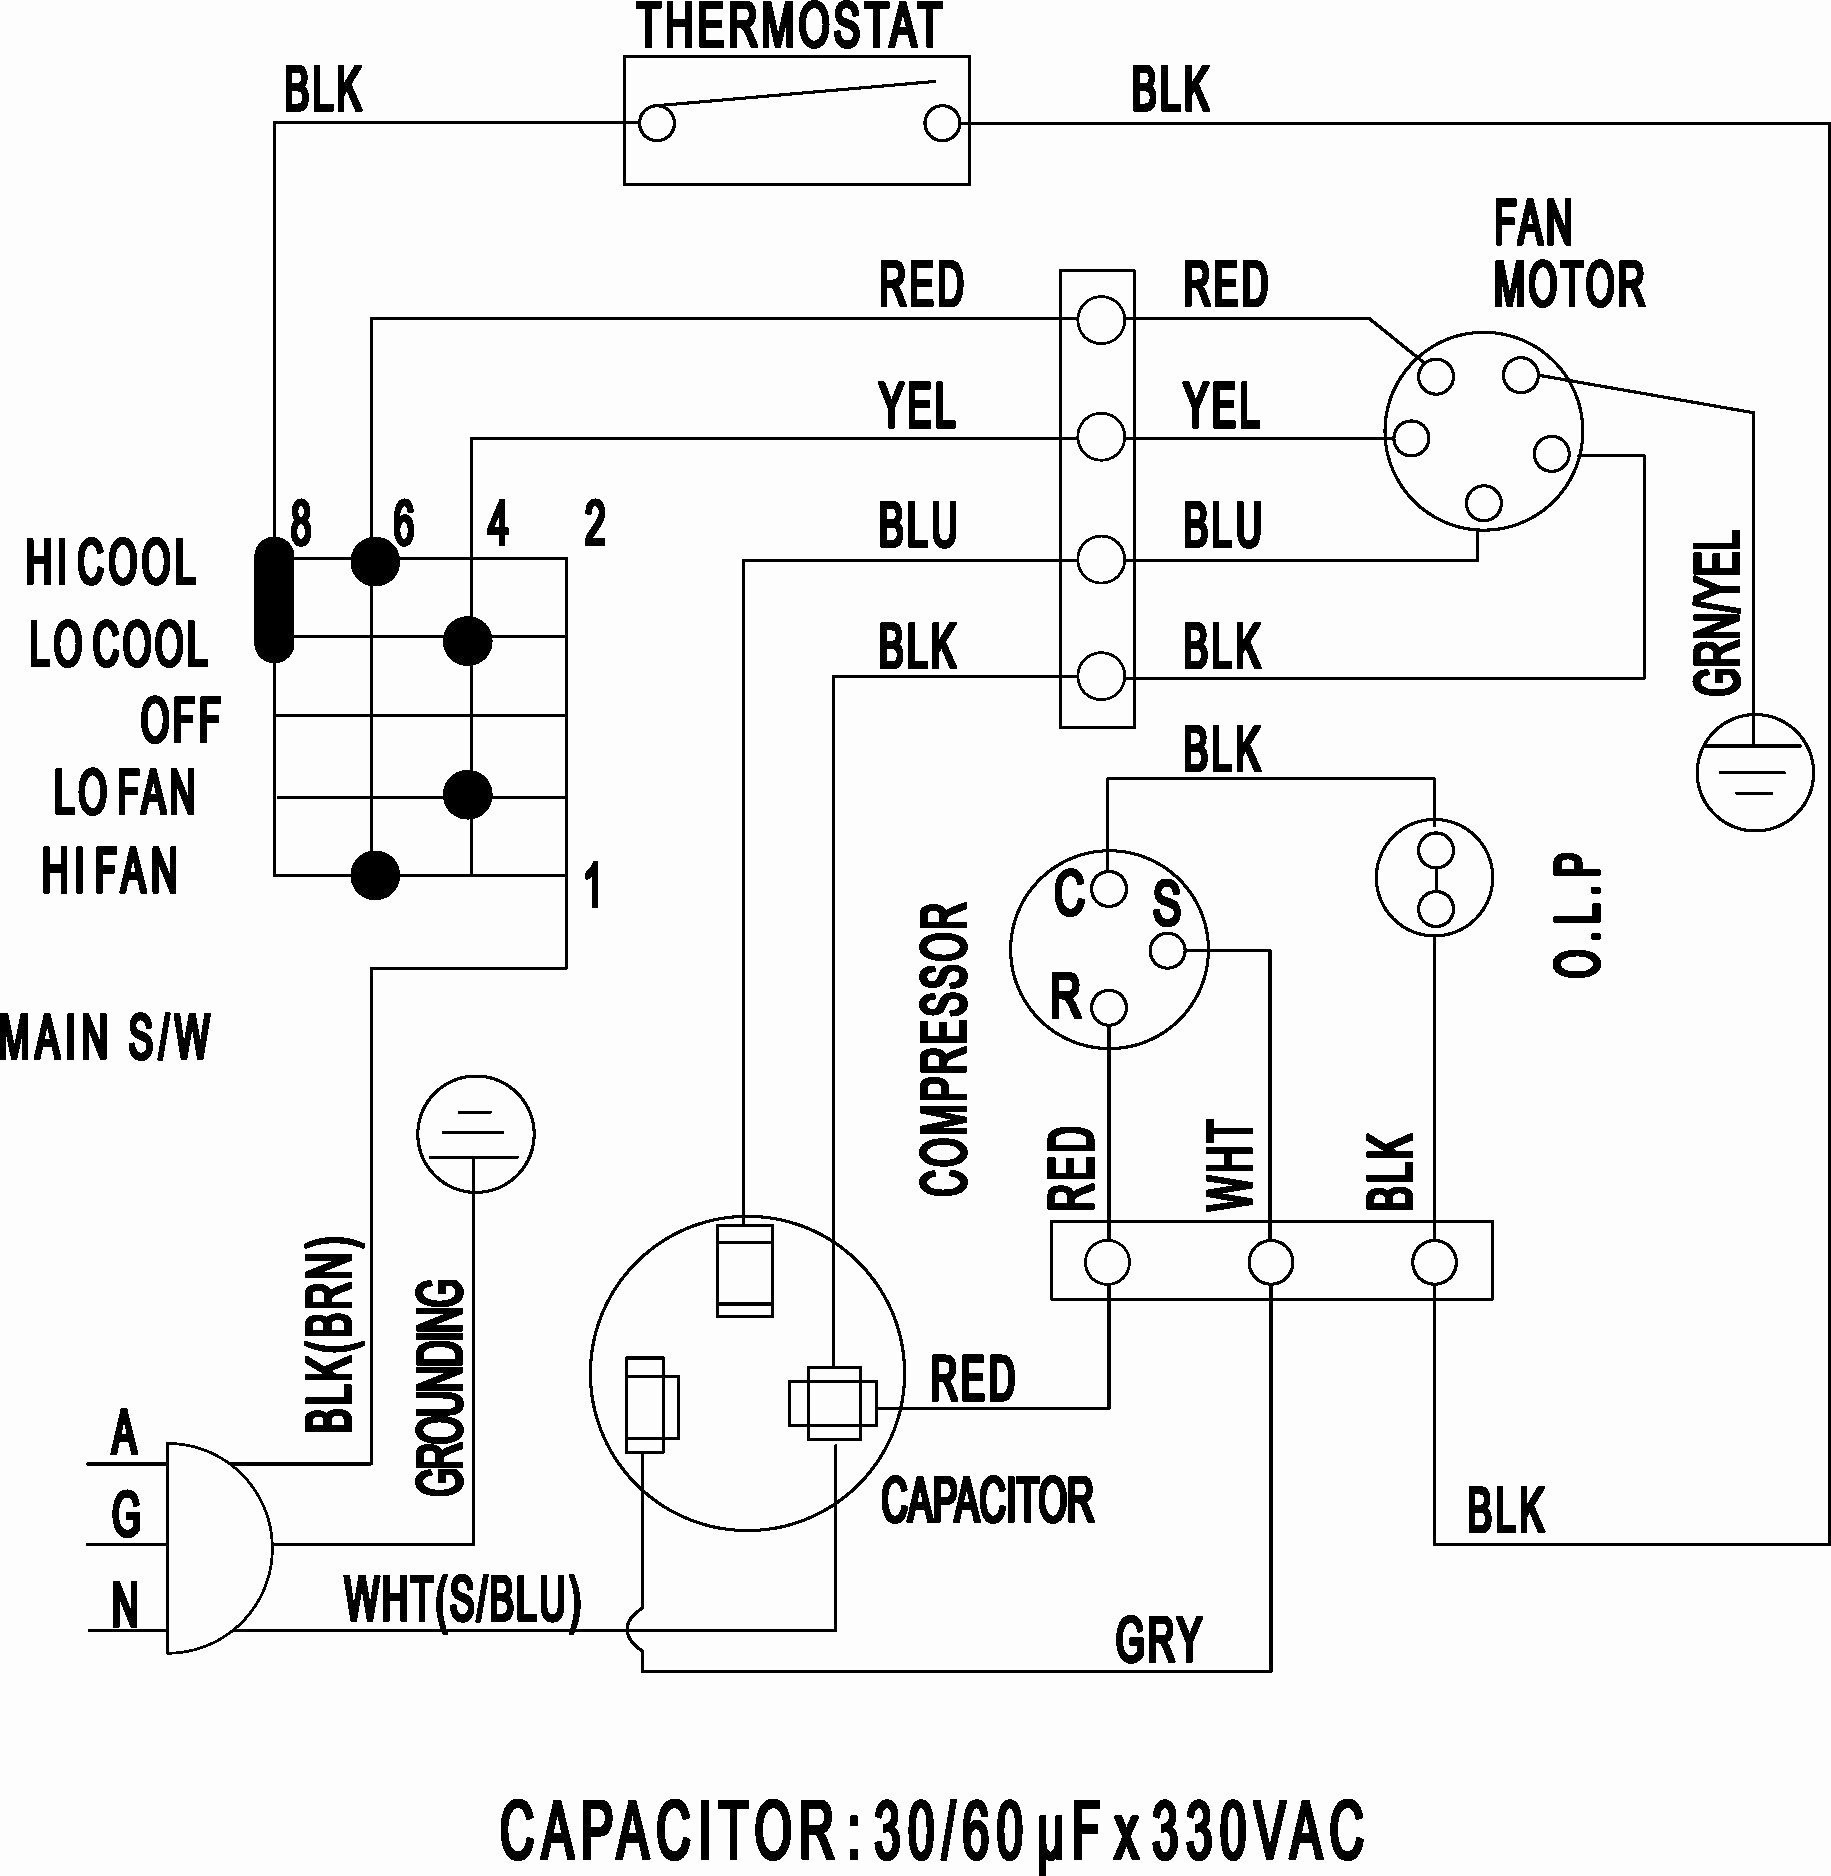 Window Ac Csr Wiring Diagram Apktodownload